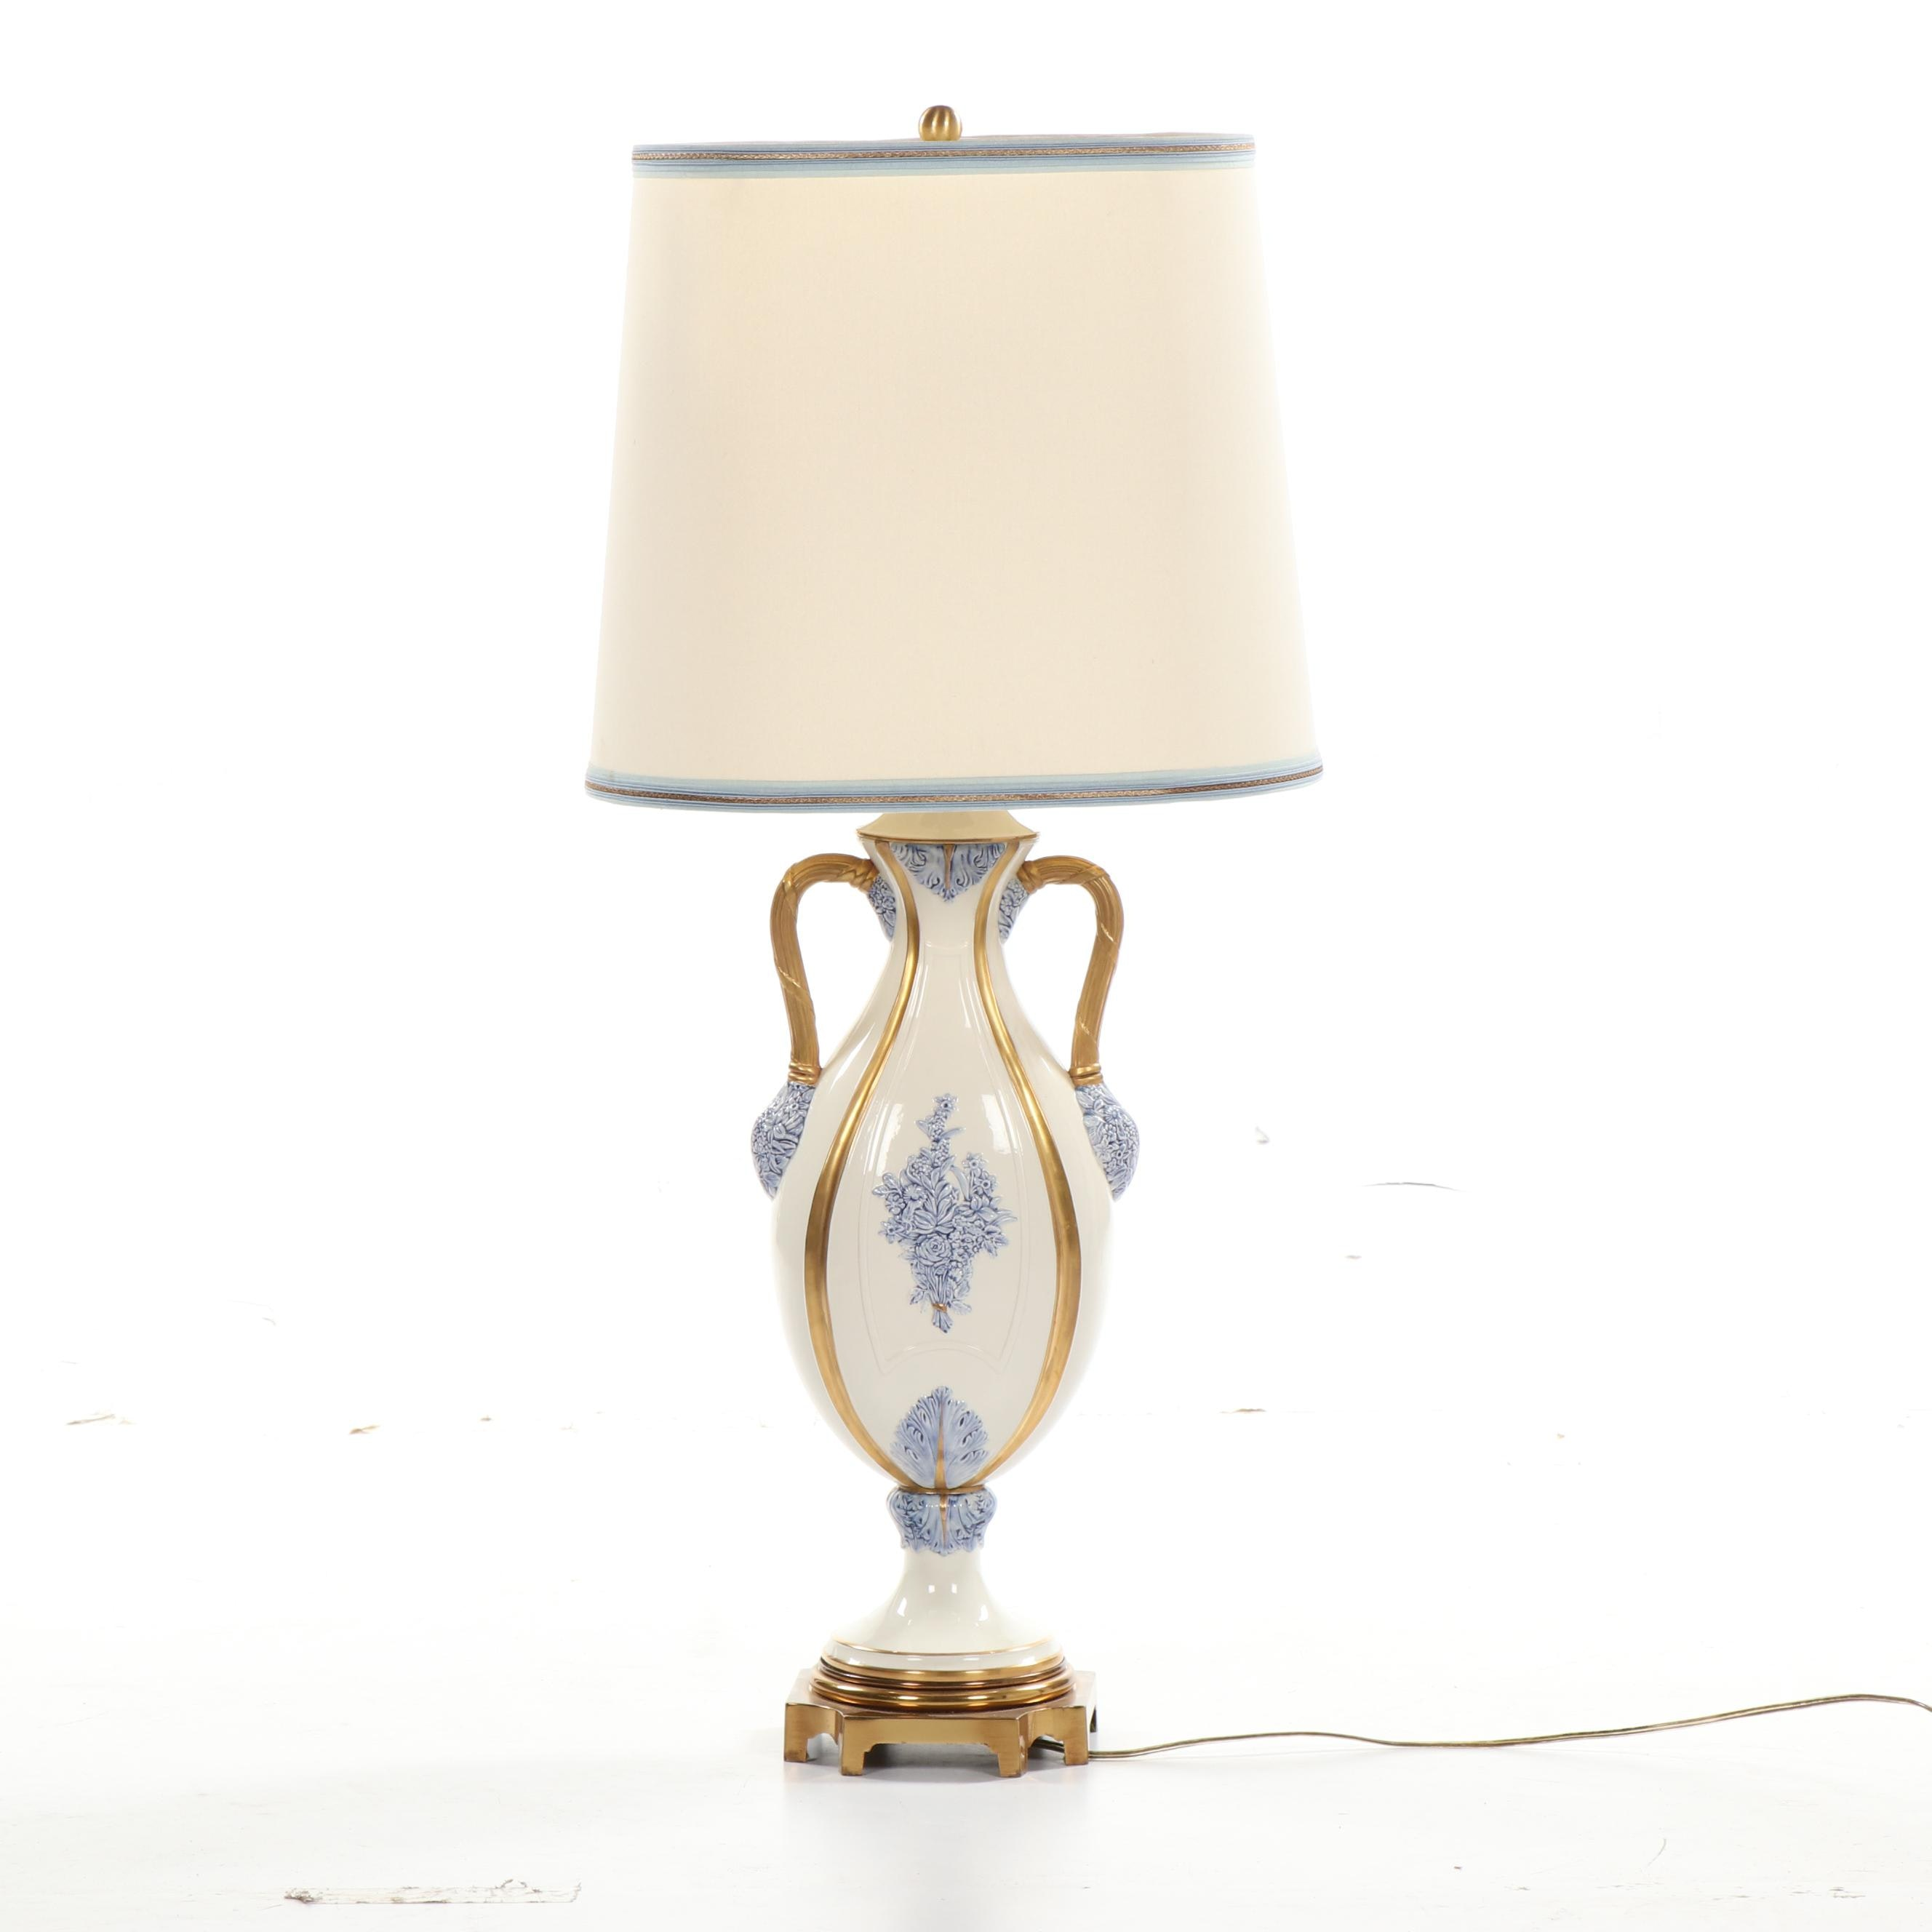 Marbro Lamp Co. White and Blue Gilt Accented Floral Table Lamp with Lamp Shade